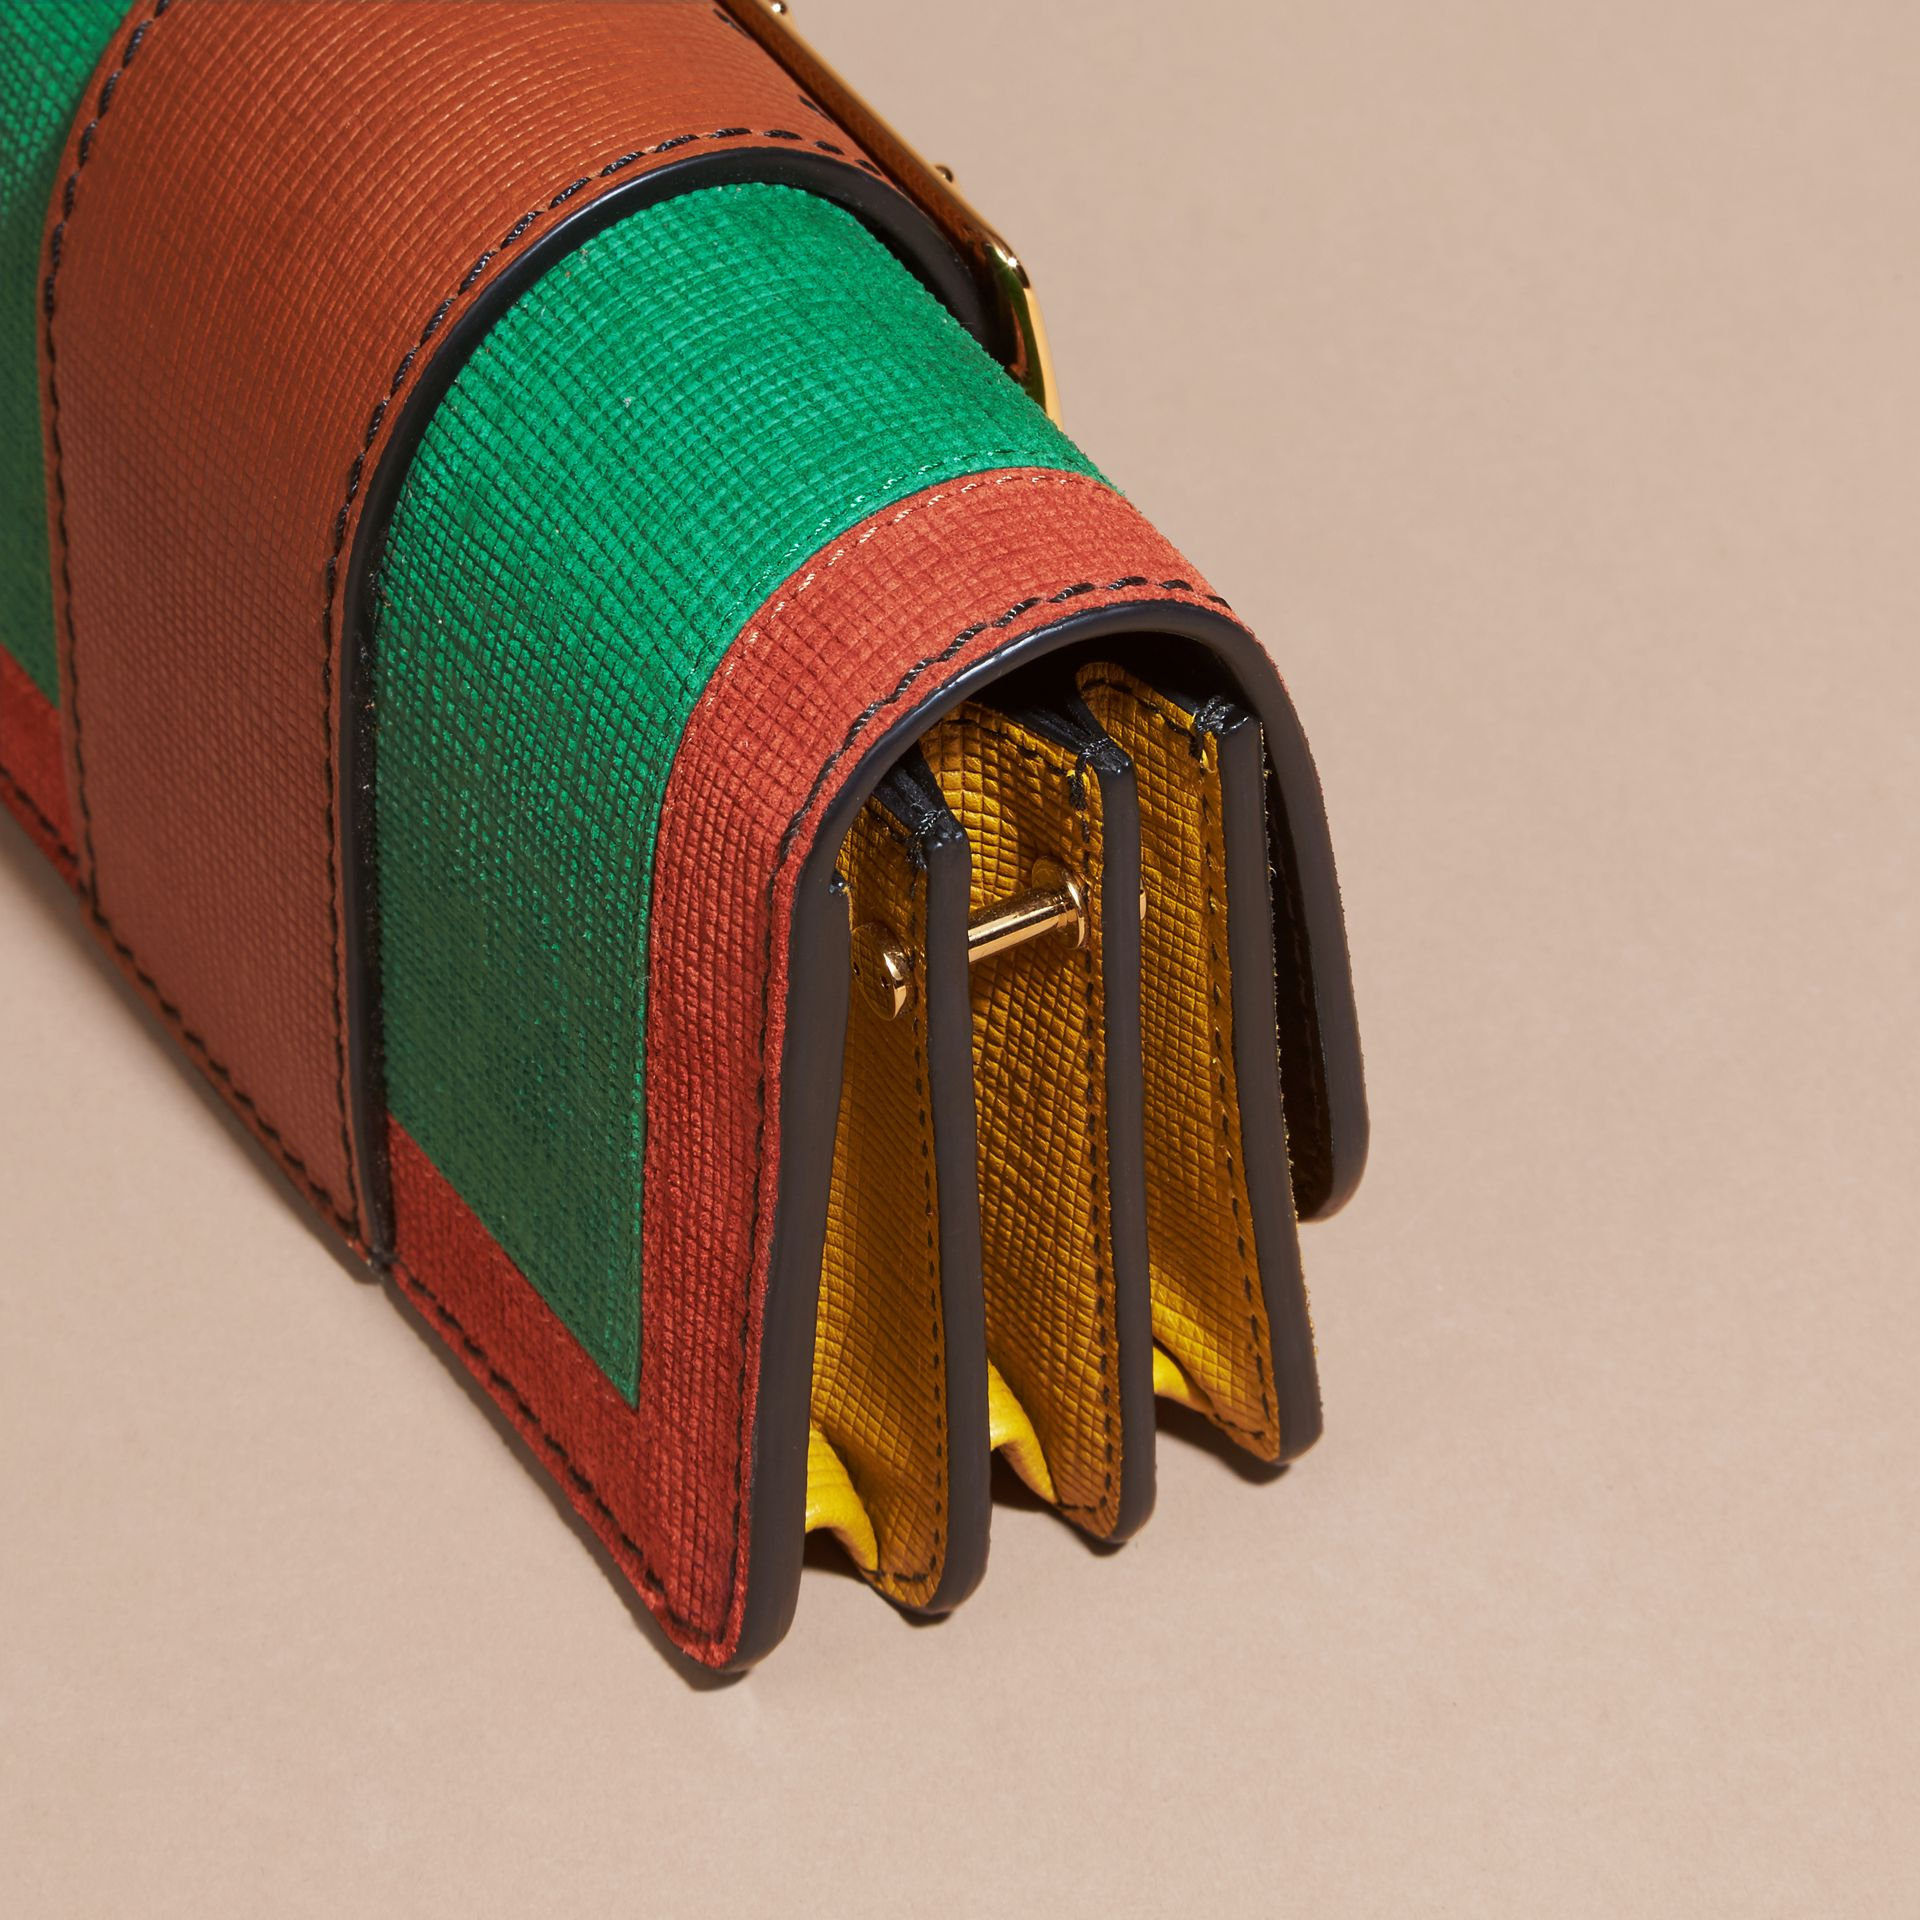 The Small Buckle Bag in Textured Leather in Bright Green - Women | Burberry - gallery image 2